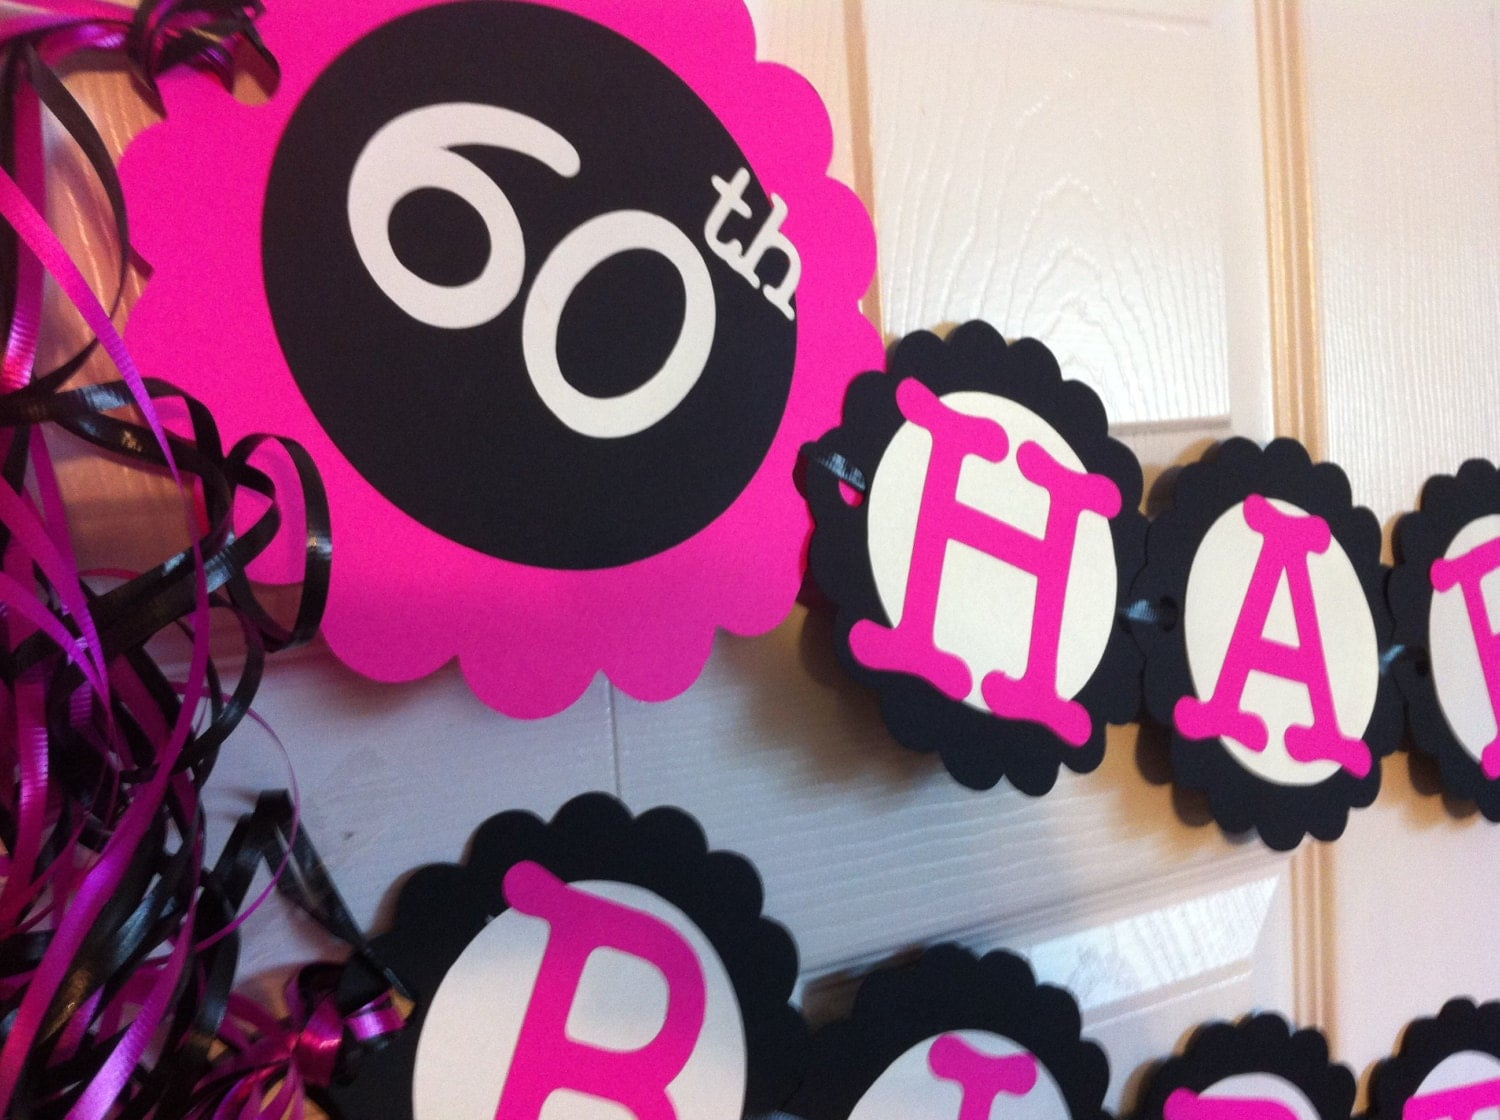 60th Birthday Party Decorations Personalization Available